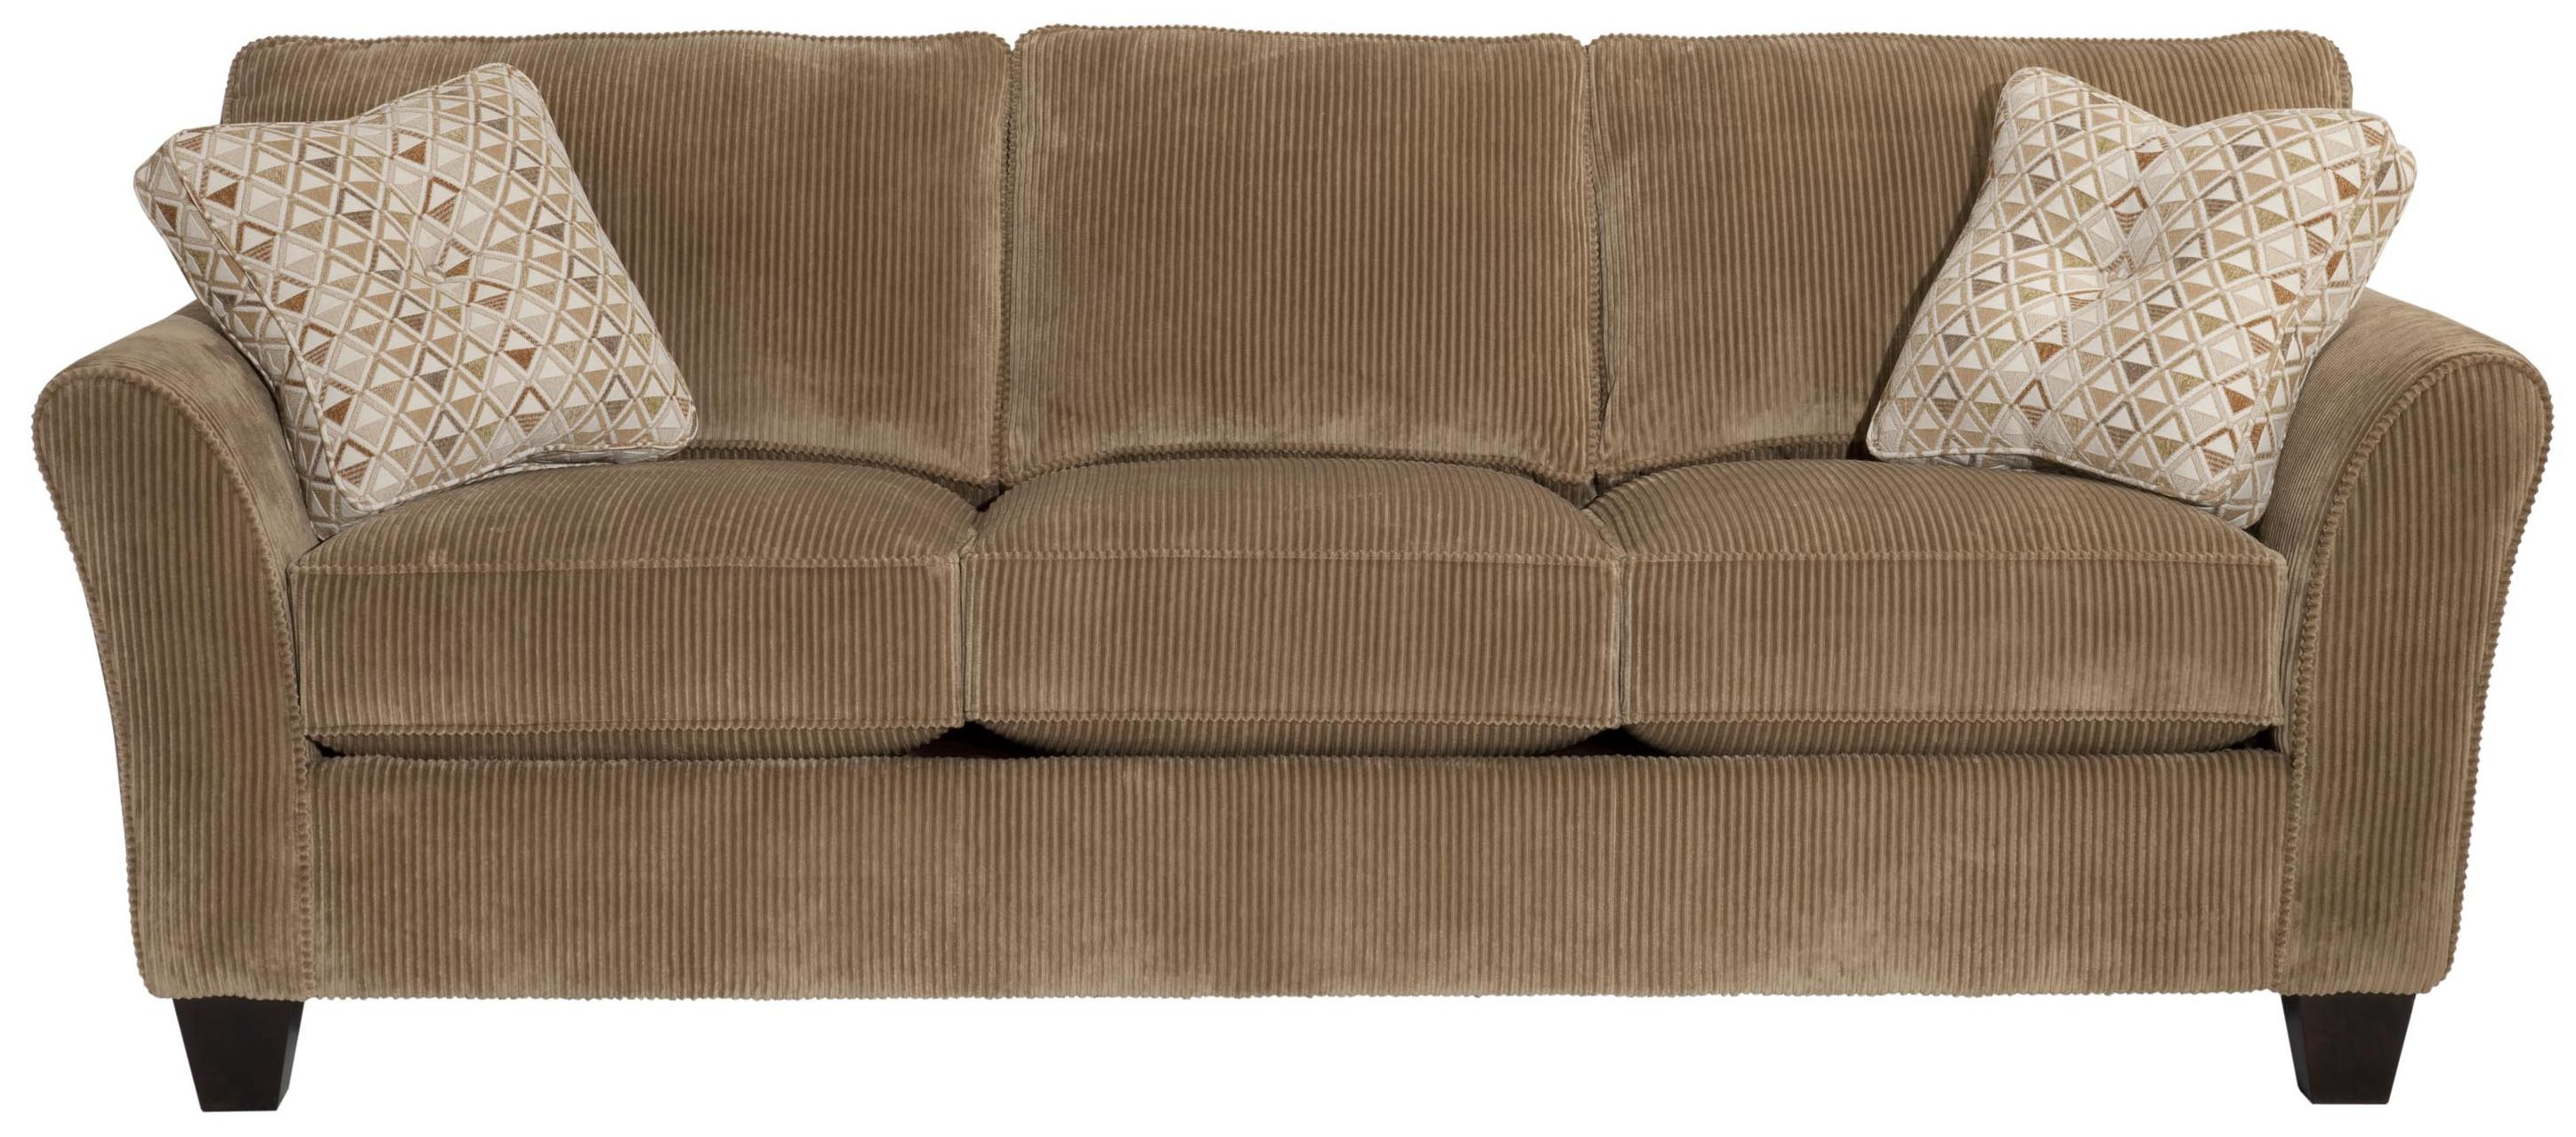 Maddie Quick Ship Sofa With Flared Arms By Broyhill Express